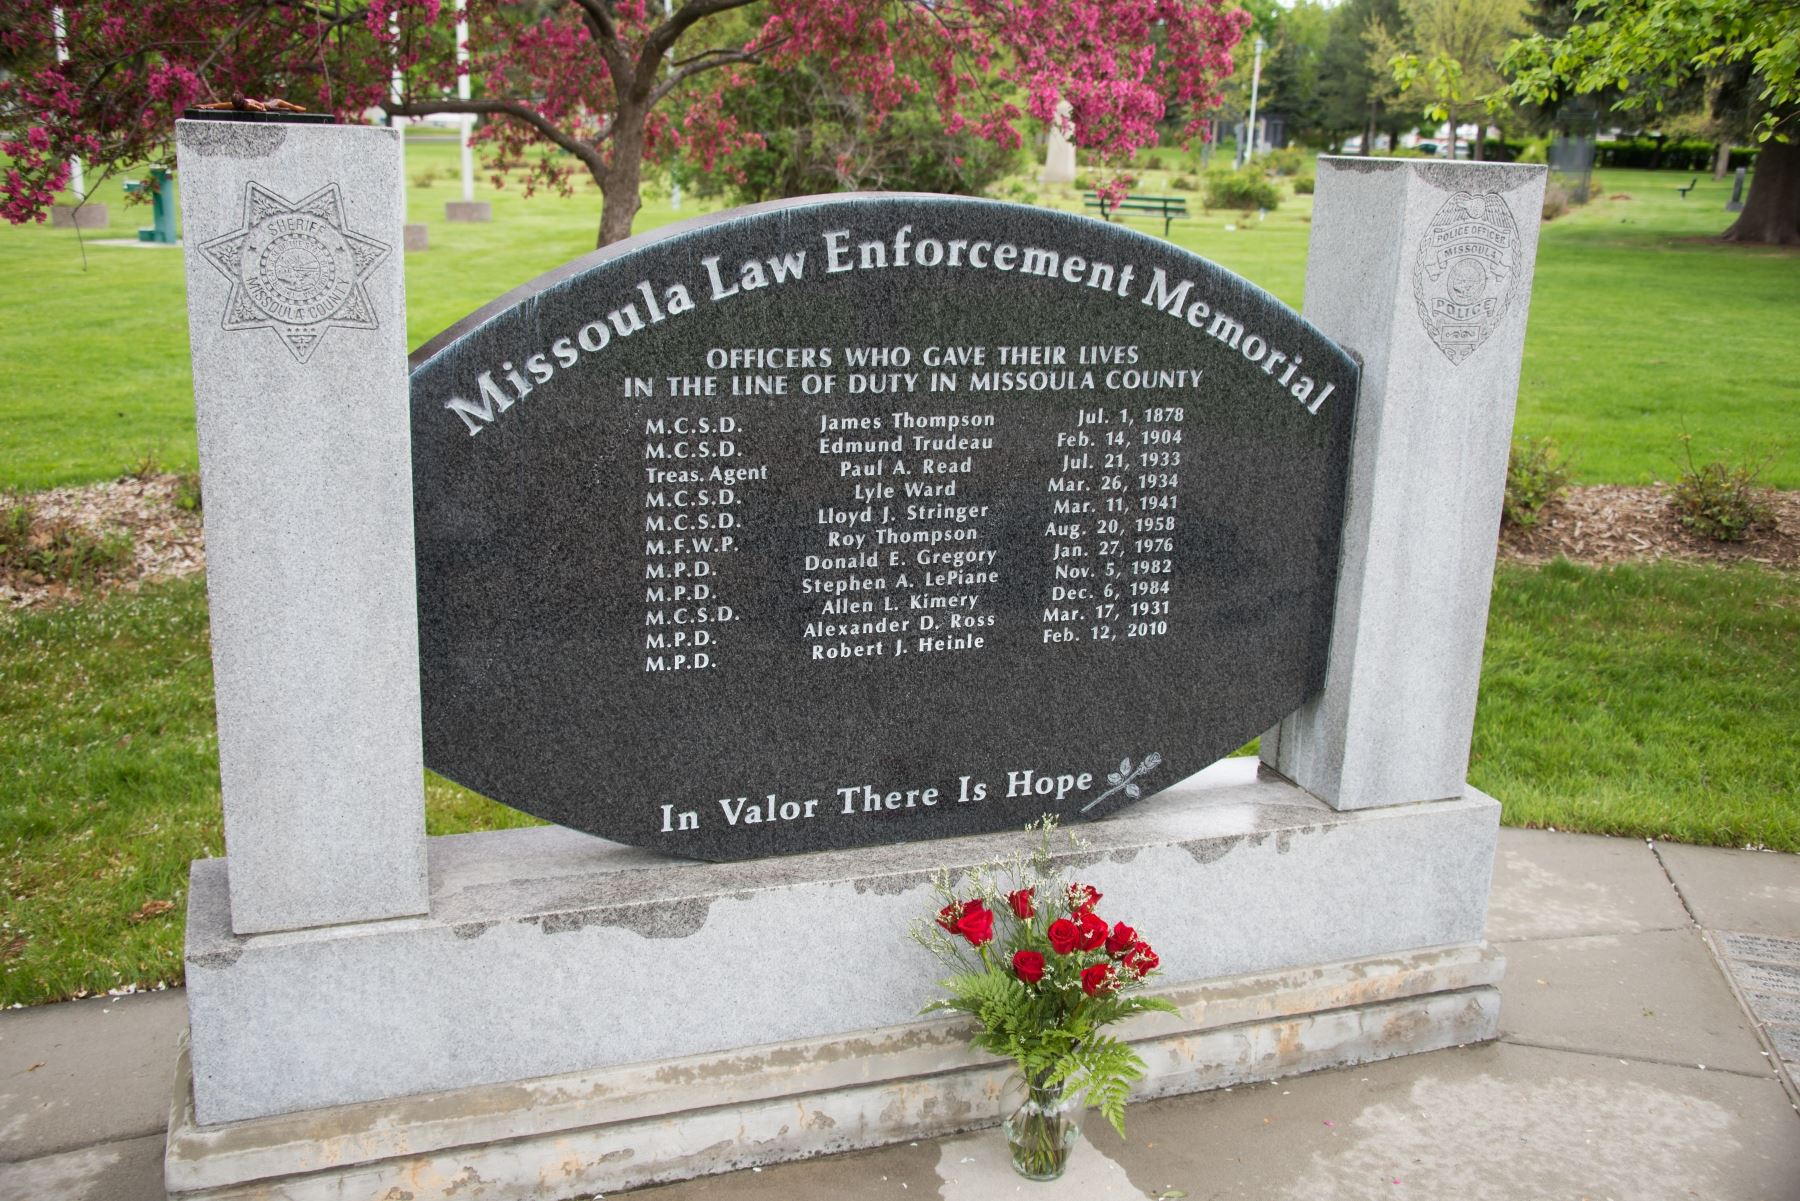 Law Enforcement Memorial Stone